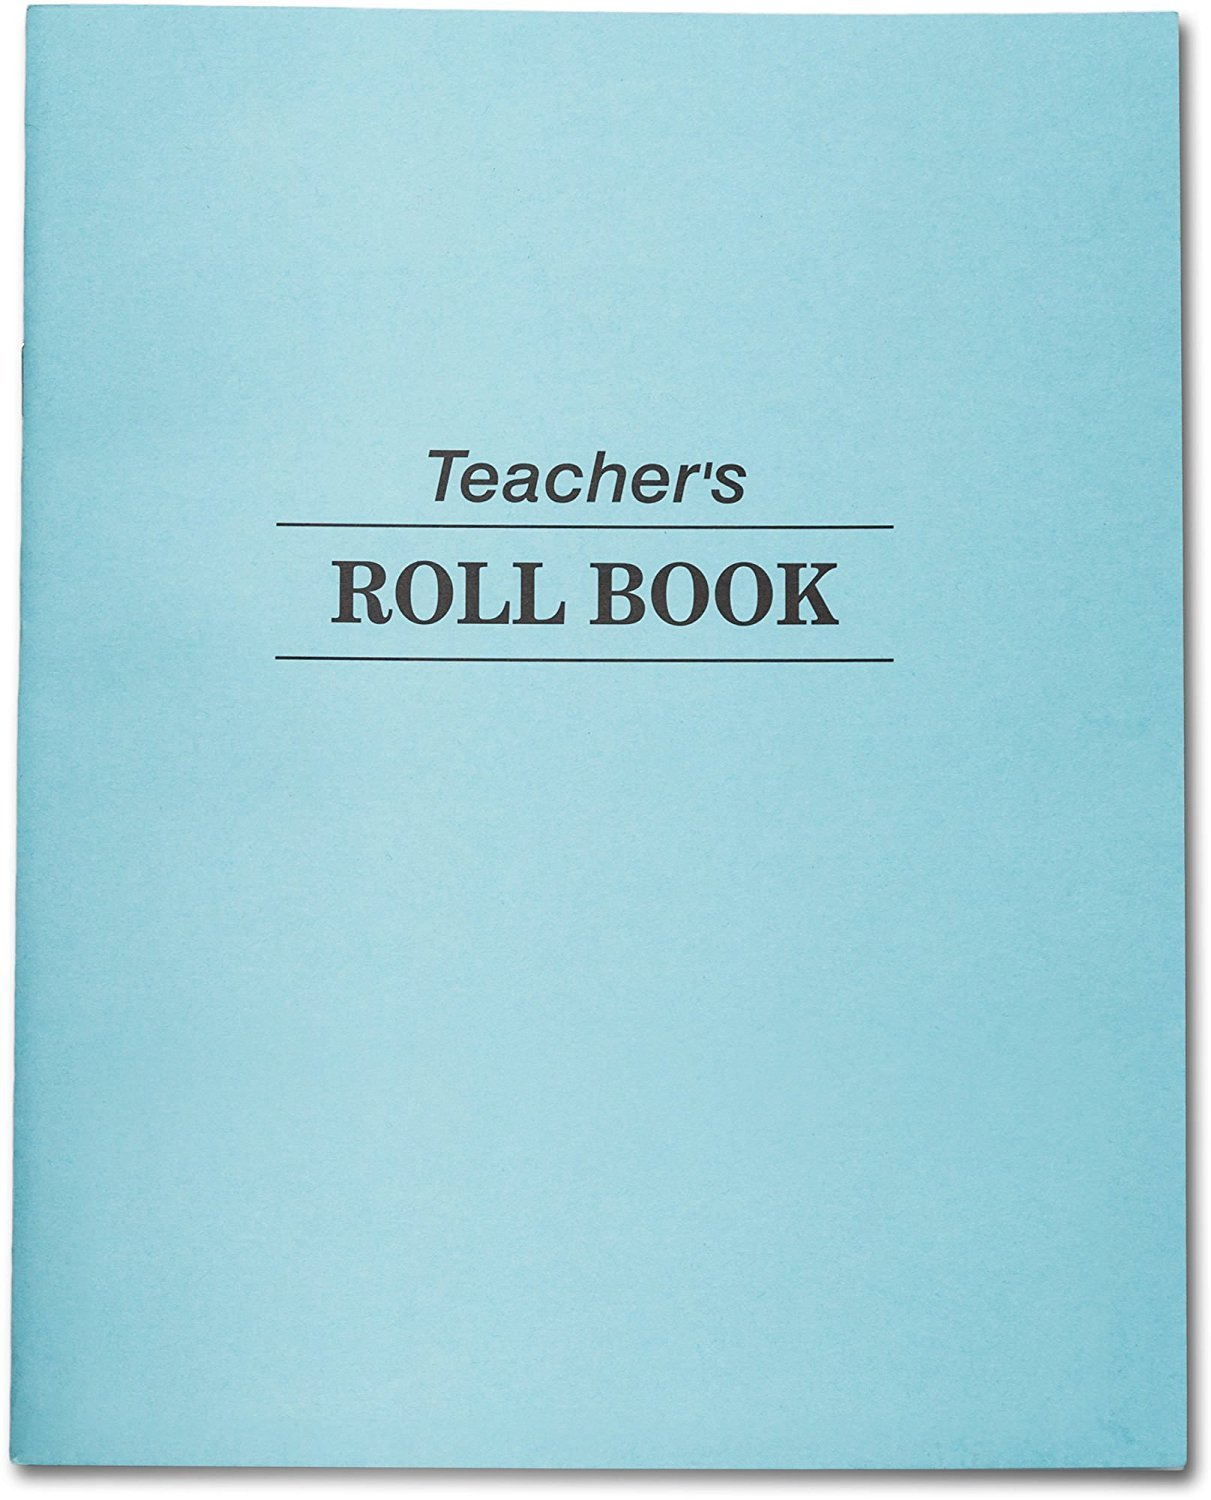 Teachers Roll Book & Class Record, 48 Double Sided Sheets, 35 Student Names per Sheet. Ruled. 9 1/2 in X 7 1/2 Teacher's Edition